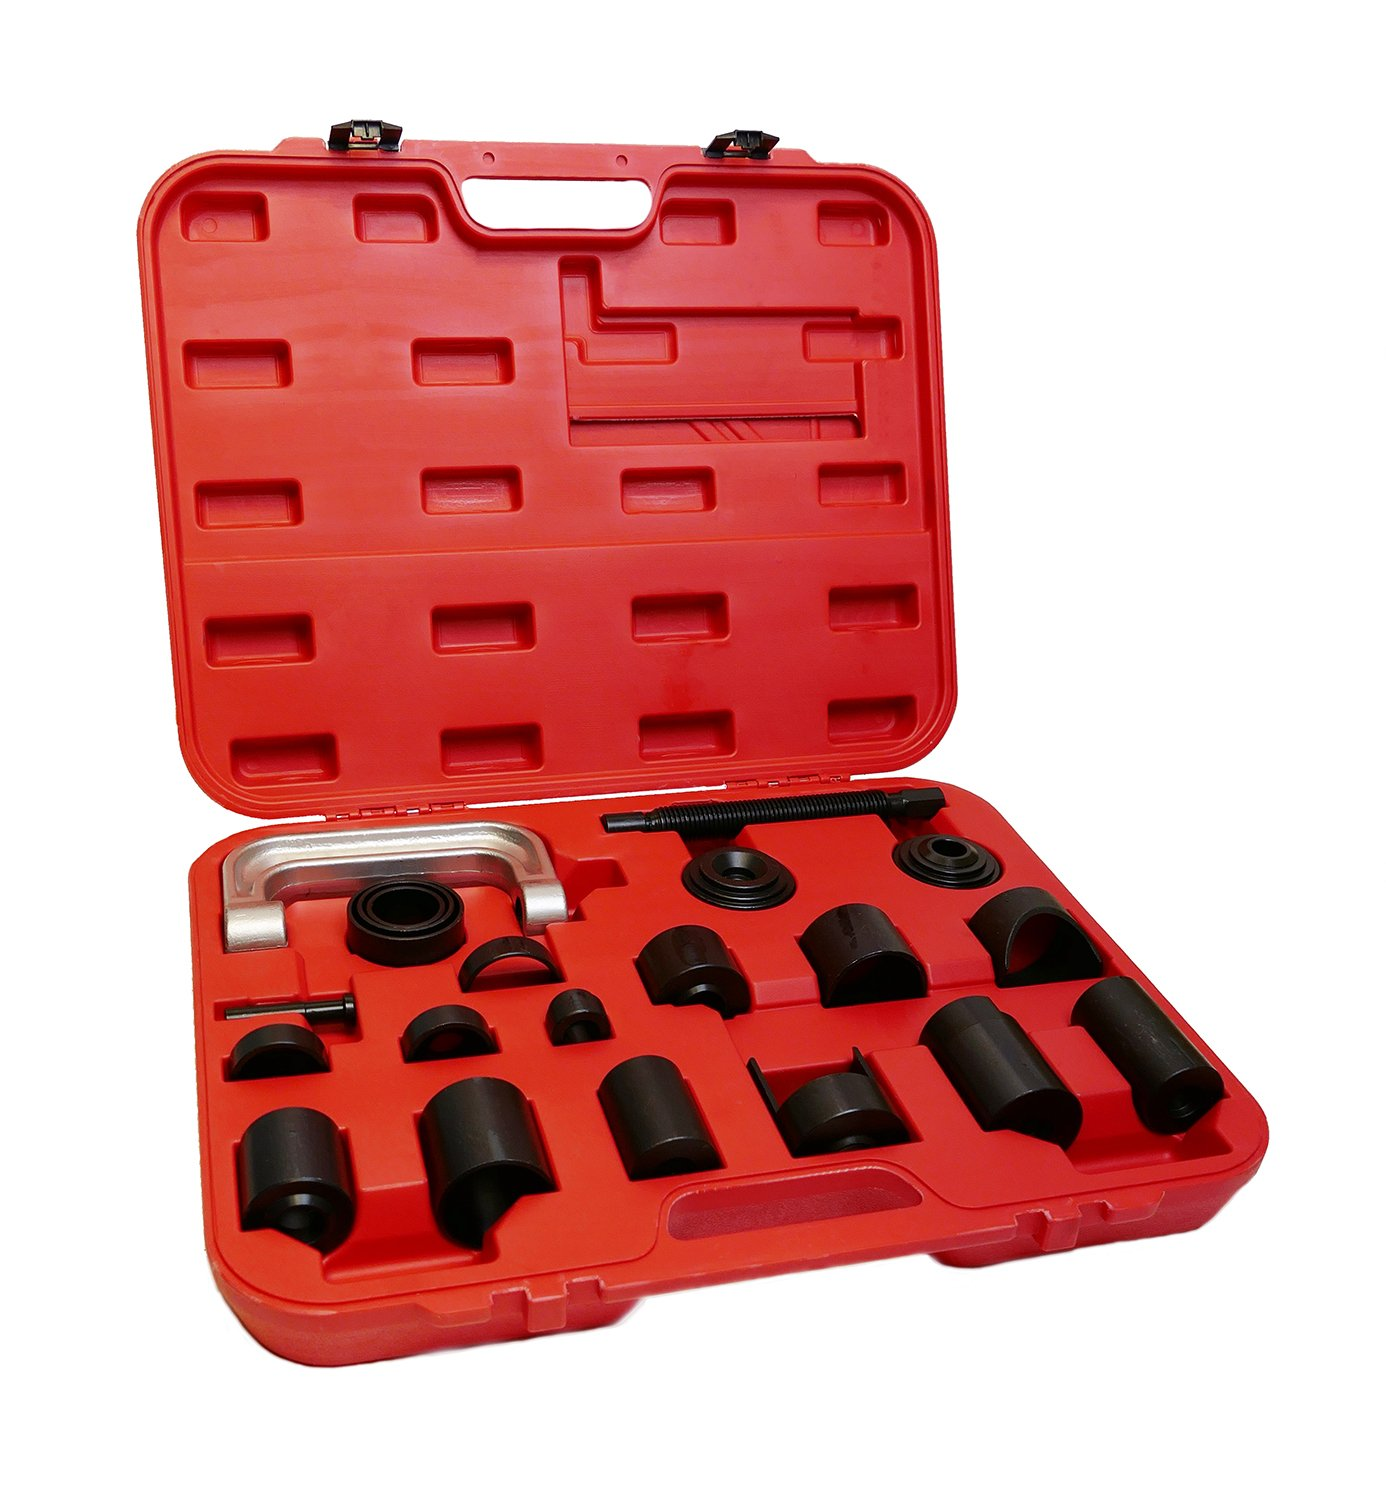 ABN Ball Joint Remover Puller and Installer with Adapters 21-Piece Tool Kit for Repair Service, Removal, Installation Auto Body Now 4030